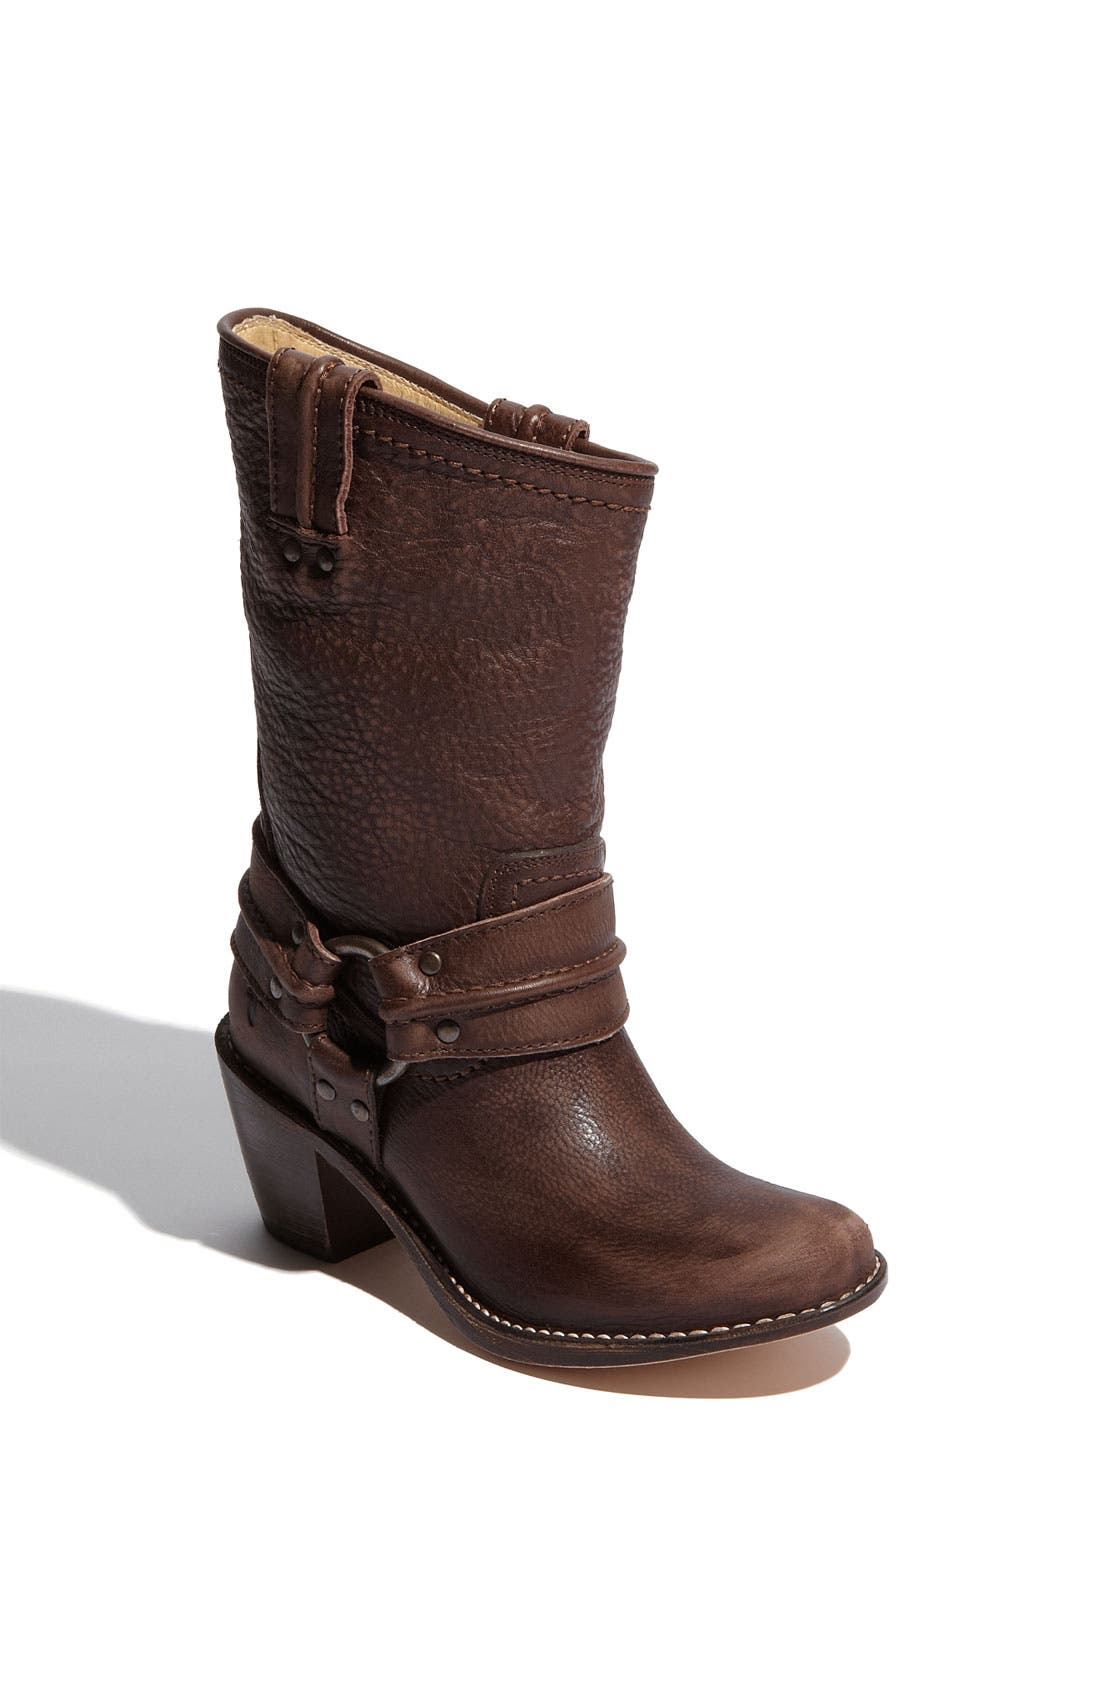 Alternate Image 1 Selected - Frye 'Carmen' Harness Boot